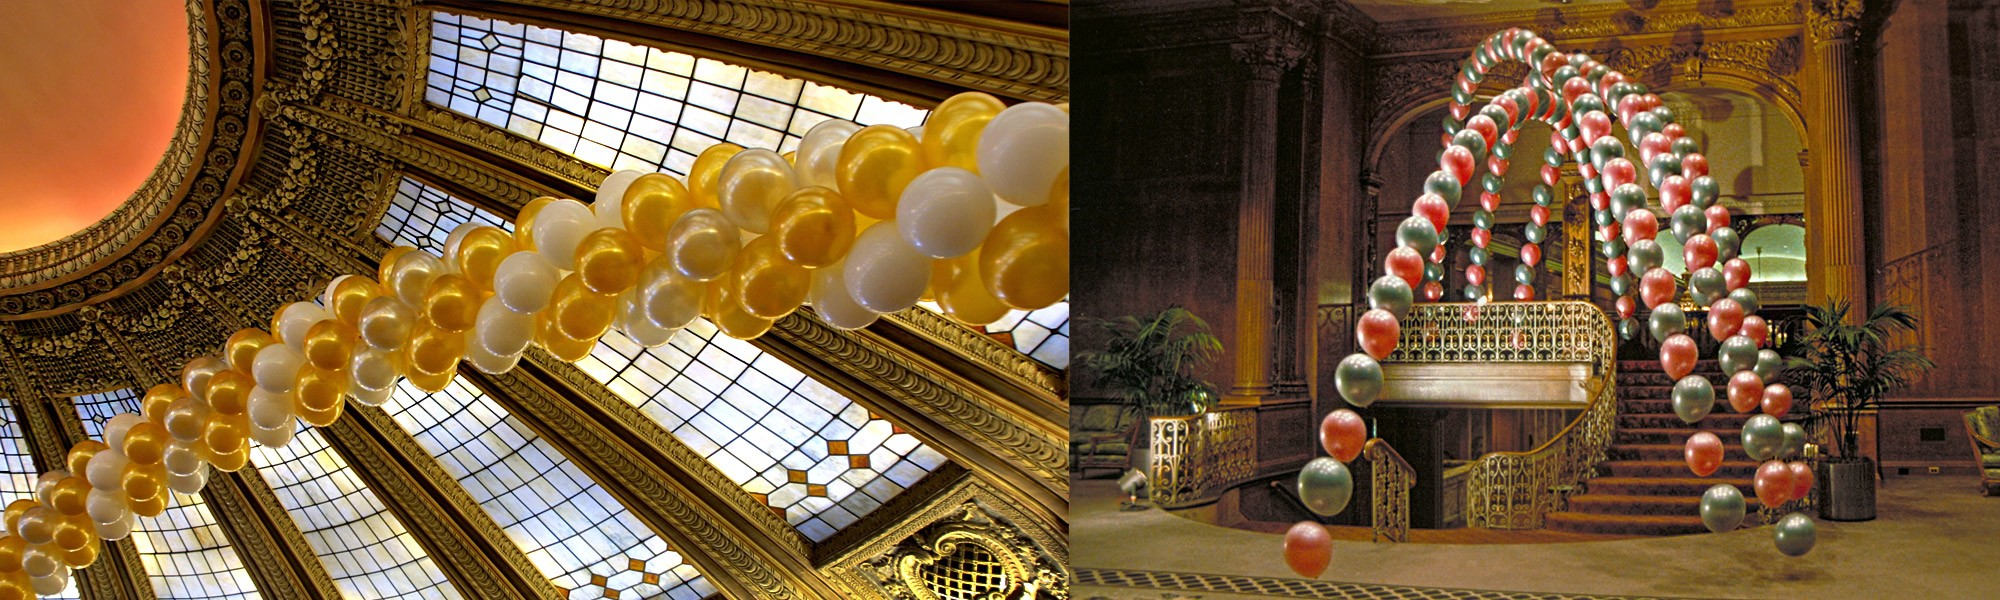 1. Balloon Arches